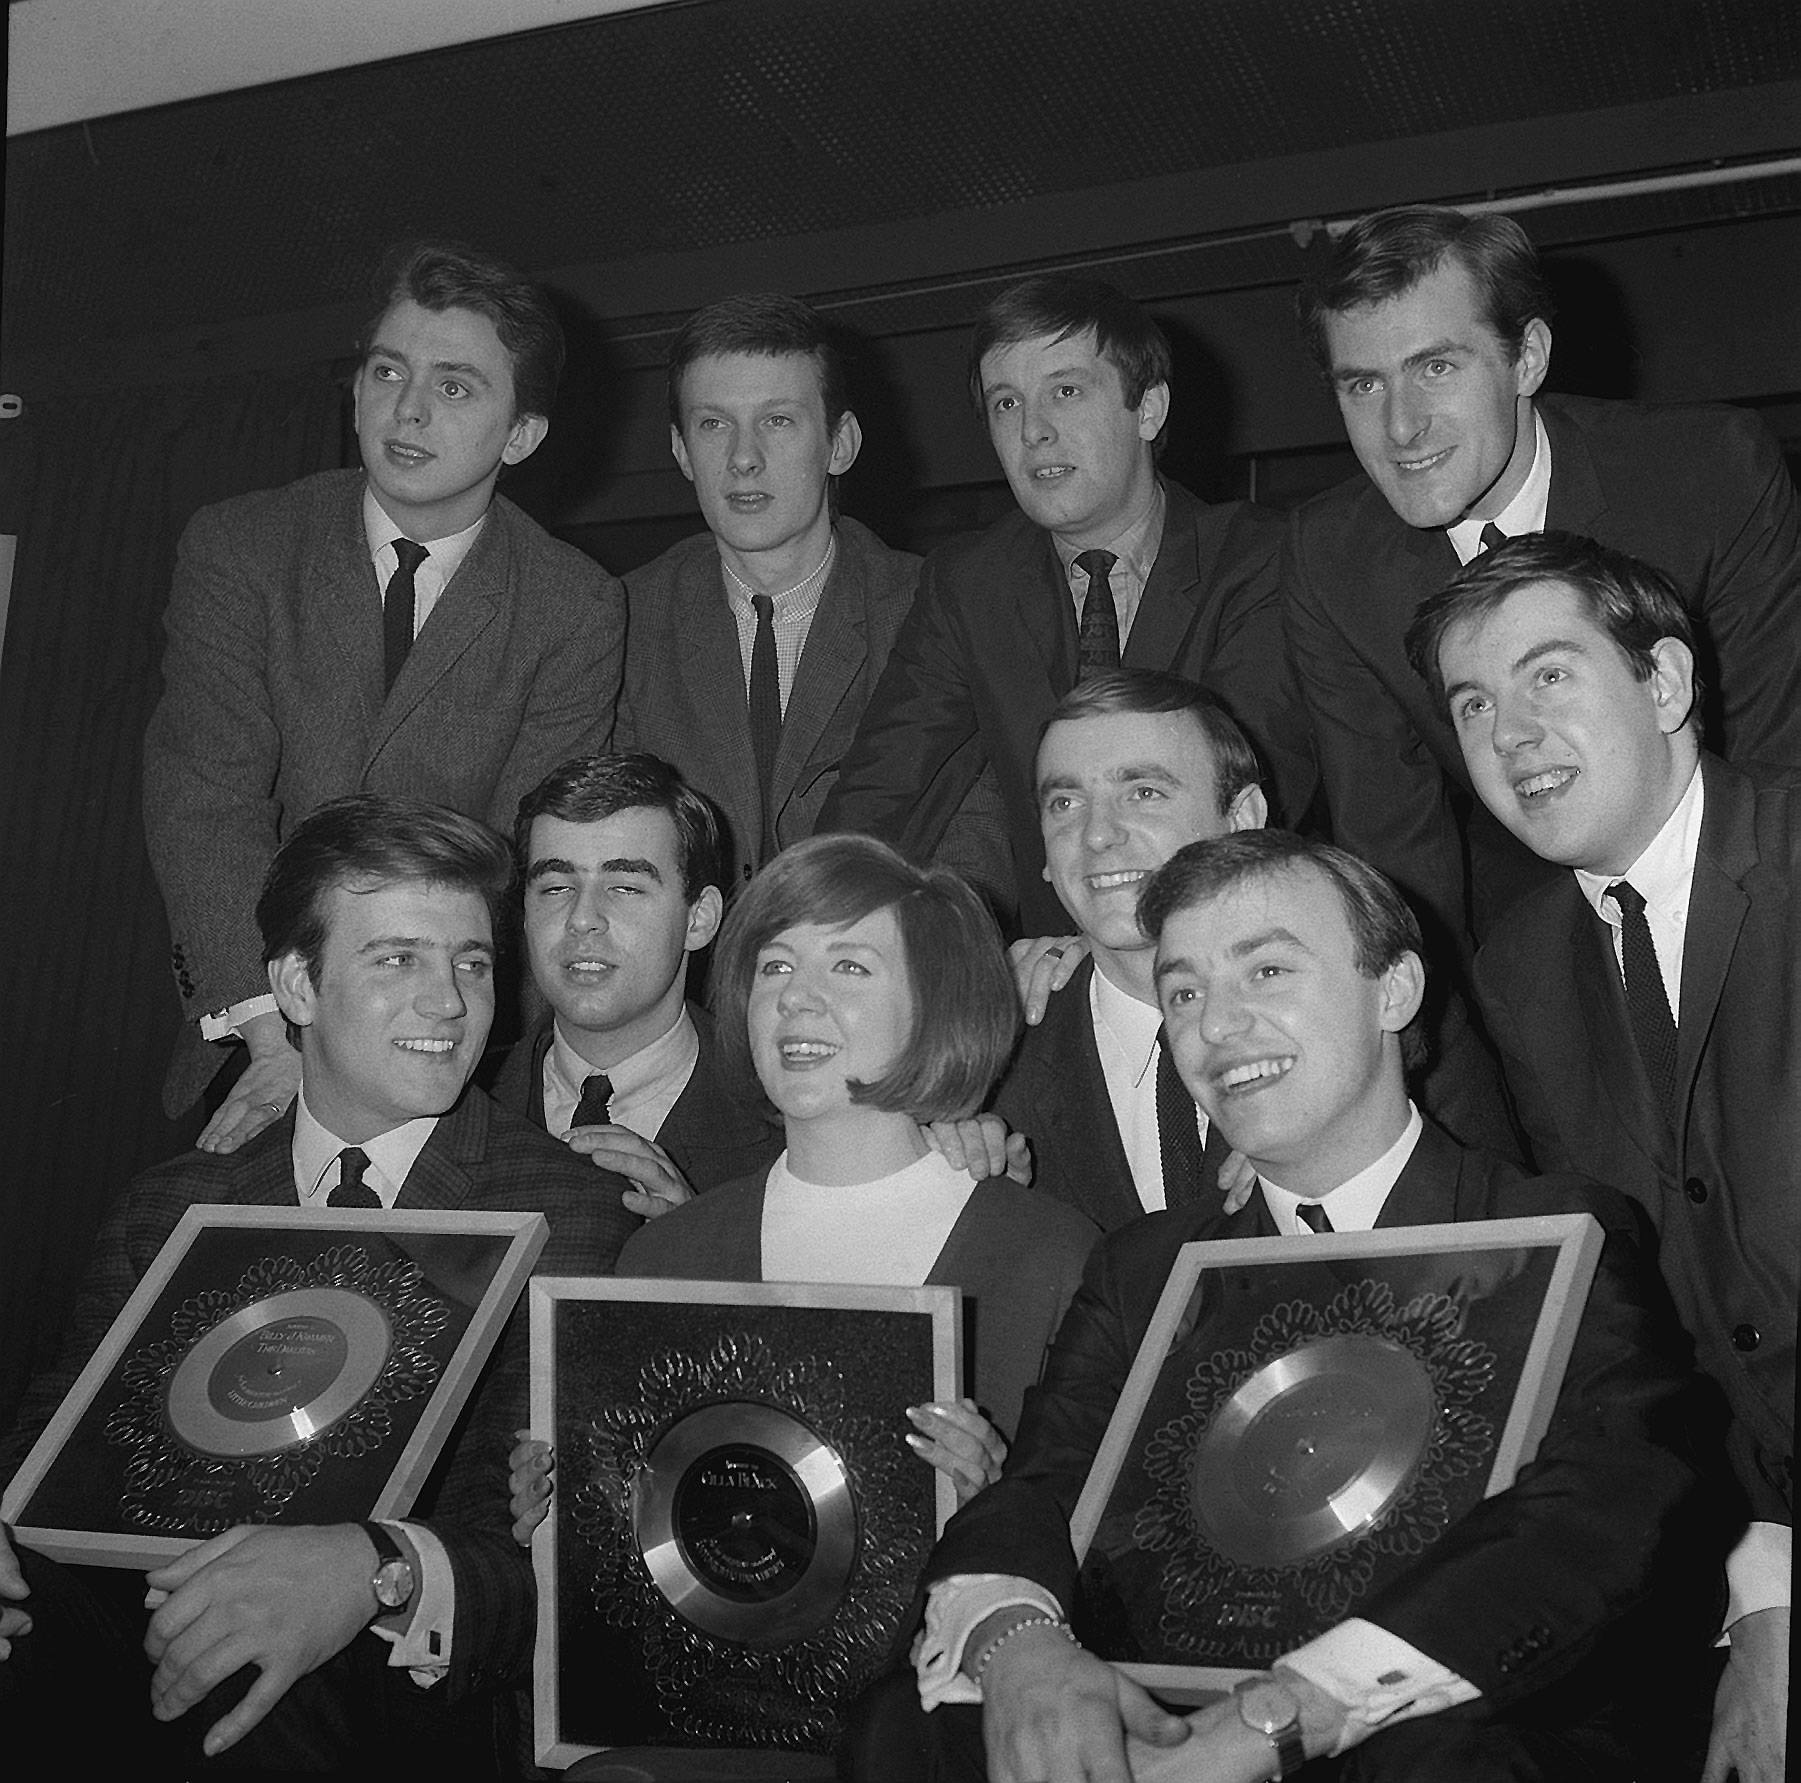 iNostalgia looks back on stand-out moments from Cilla Black's early career